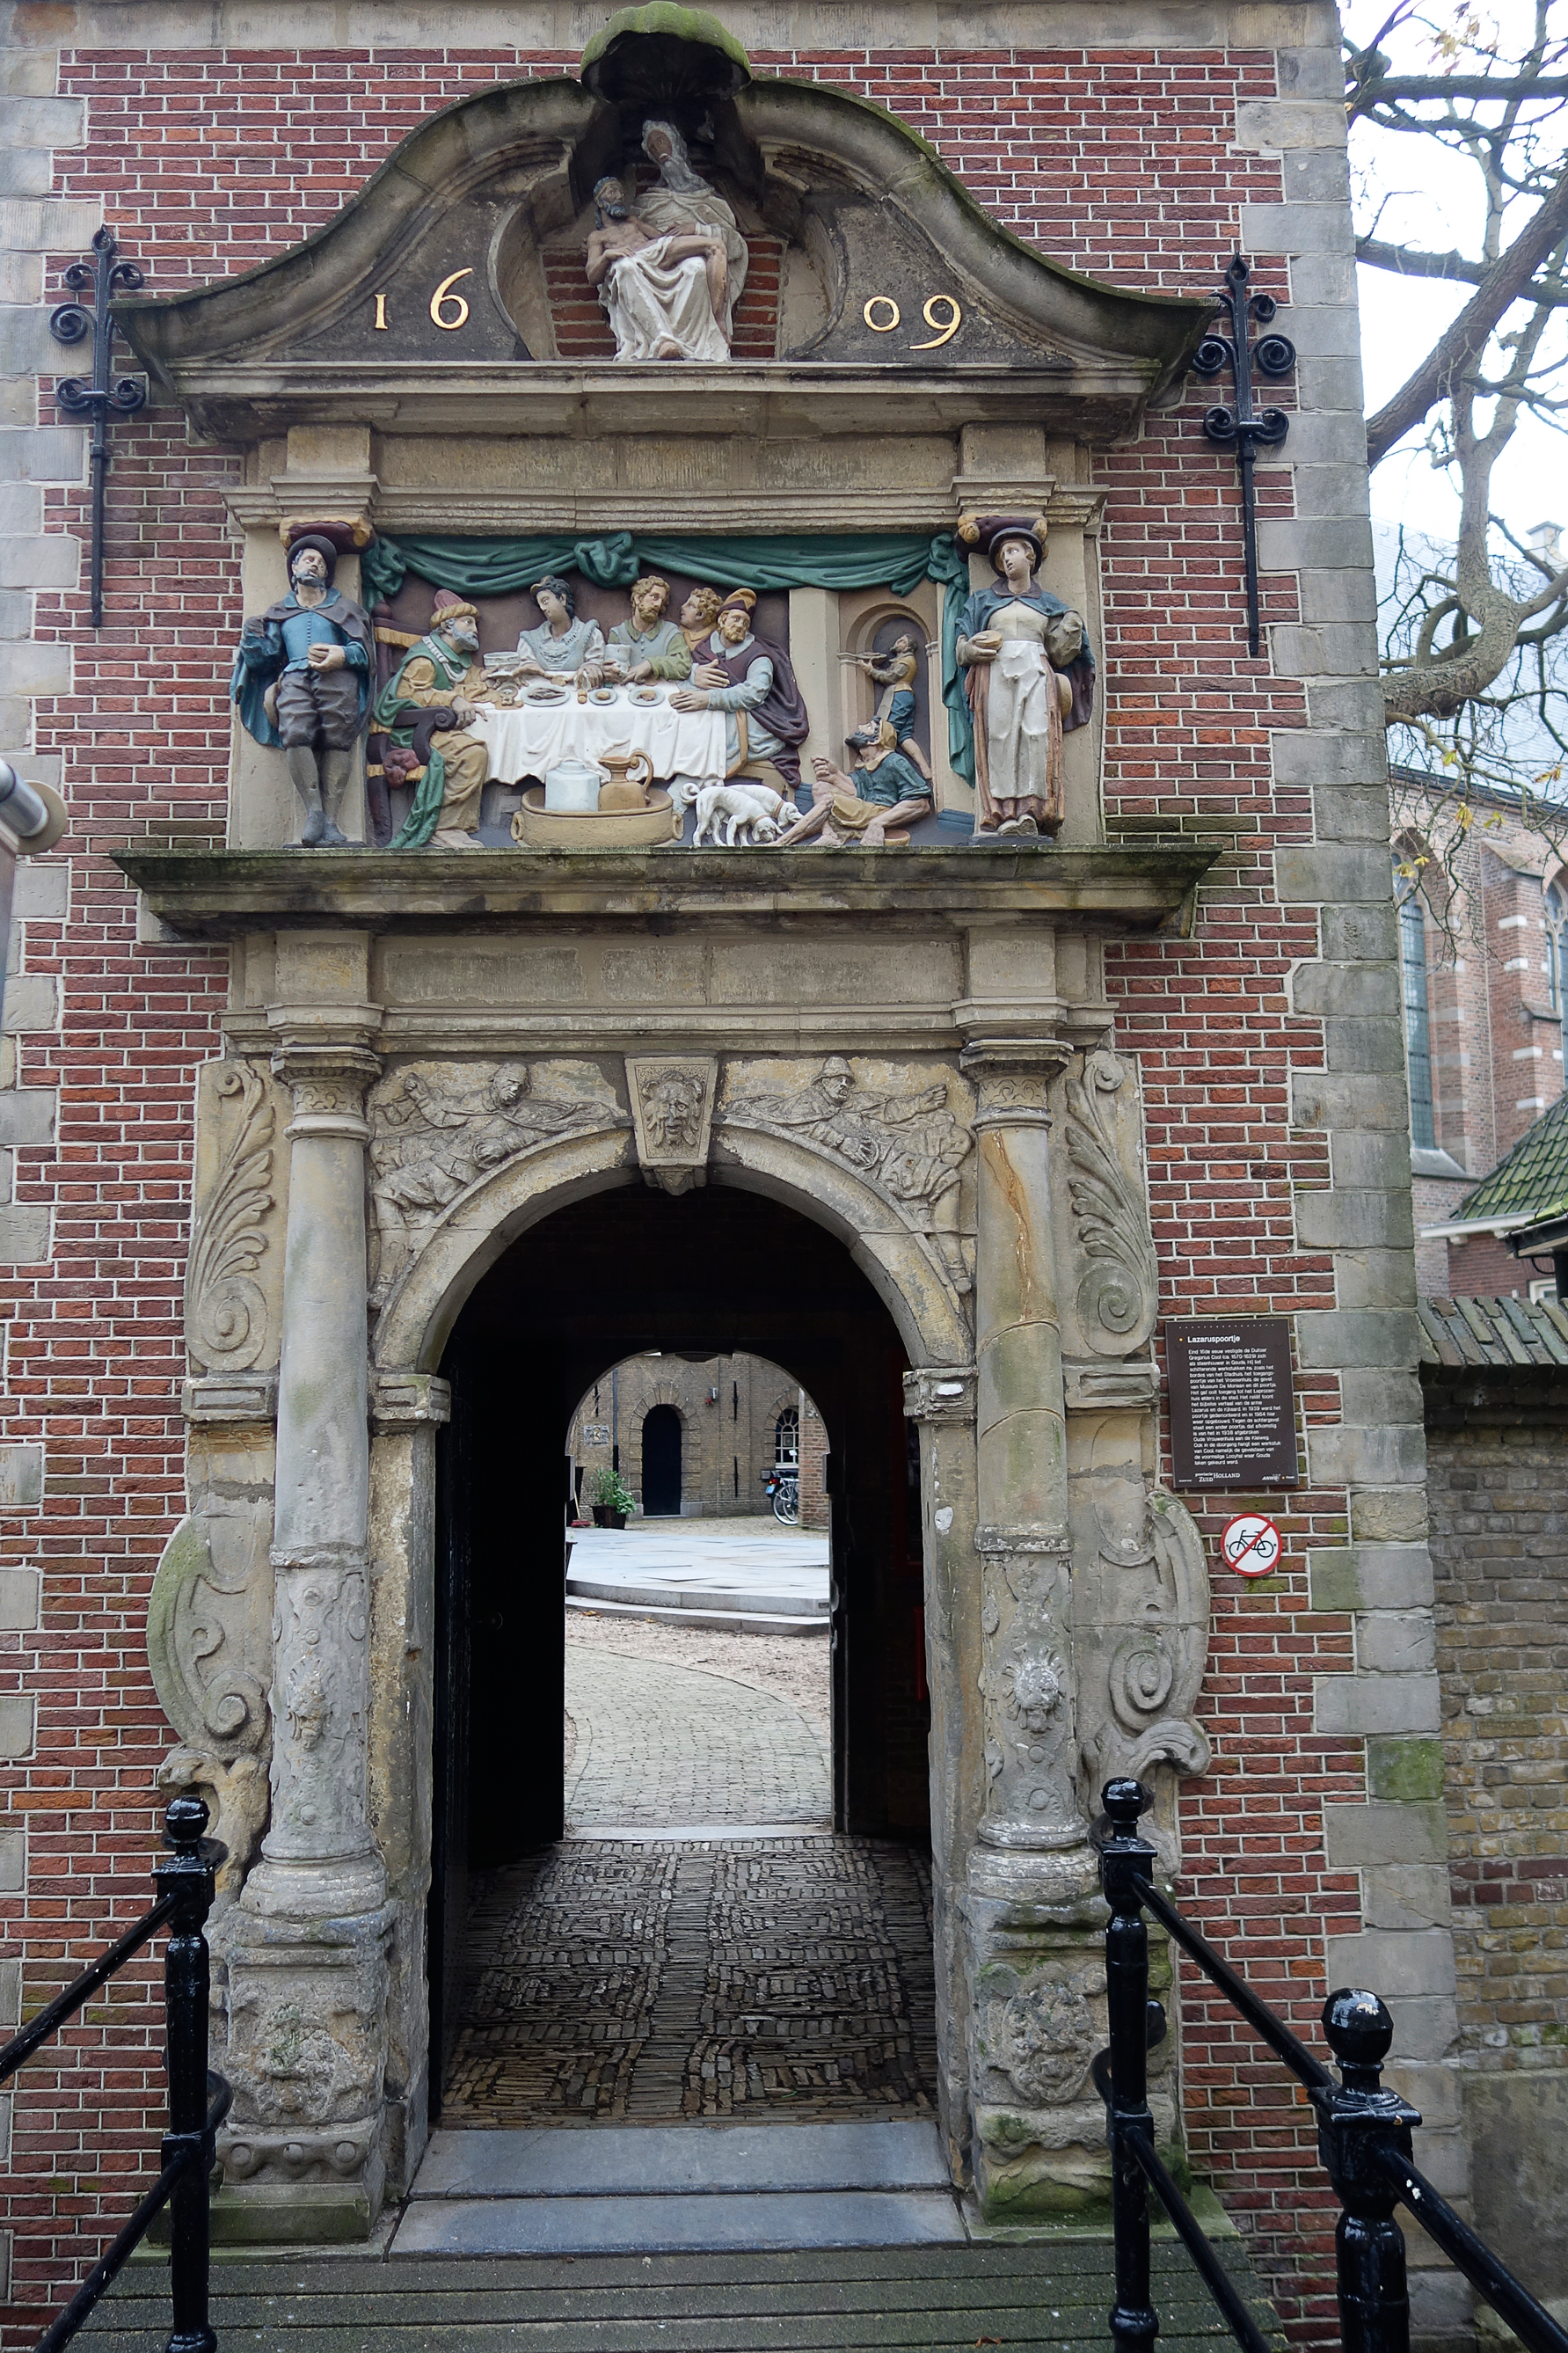 Thursday Doors - Gouda Doors with a History & Thursday Doors \u2013 Museum Doors | WitchWithaView | Photography